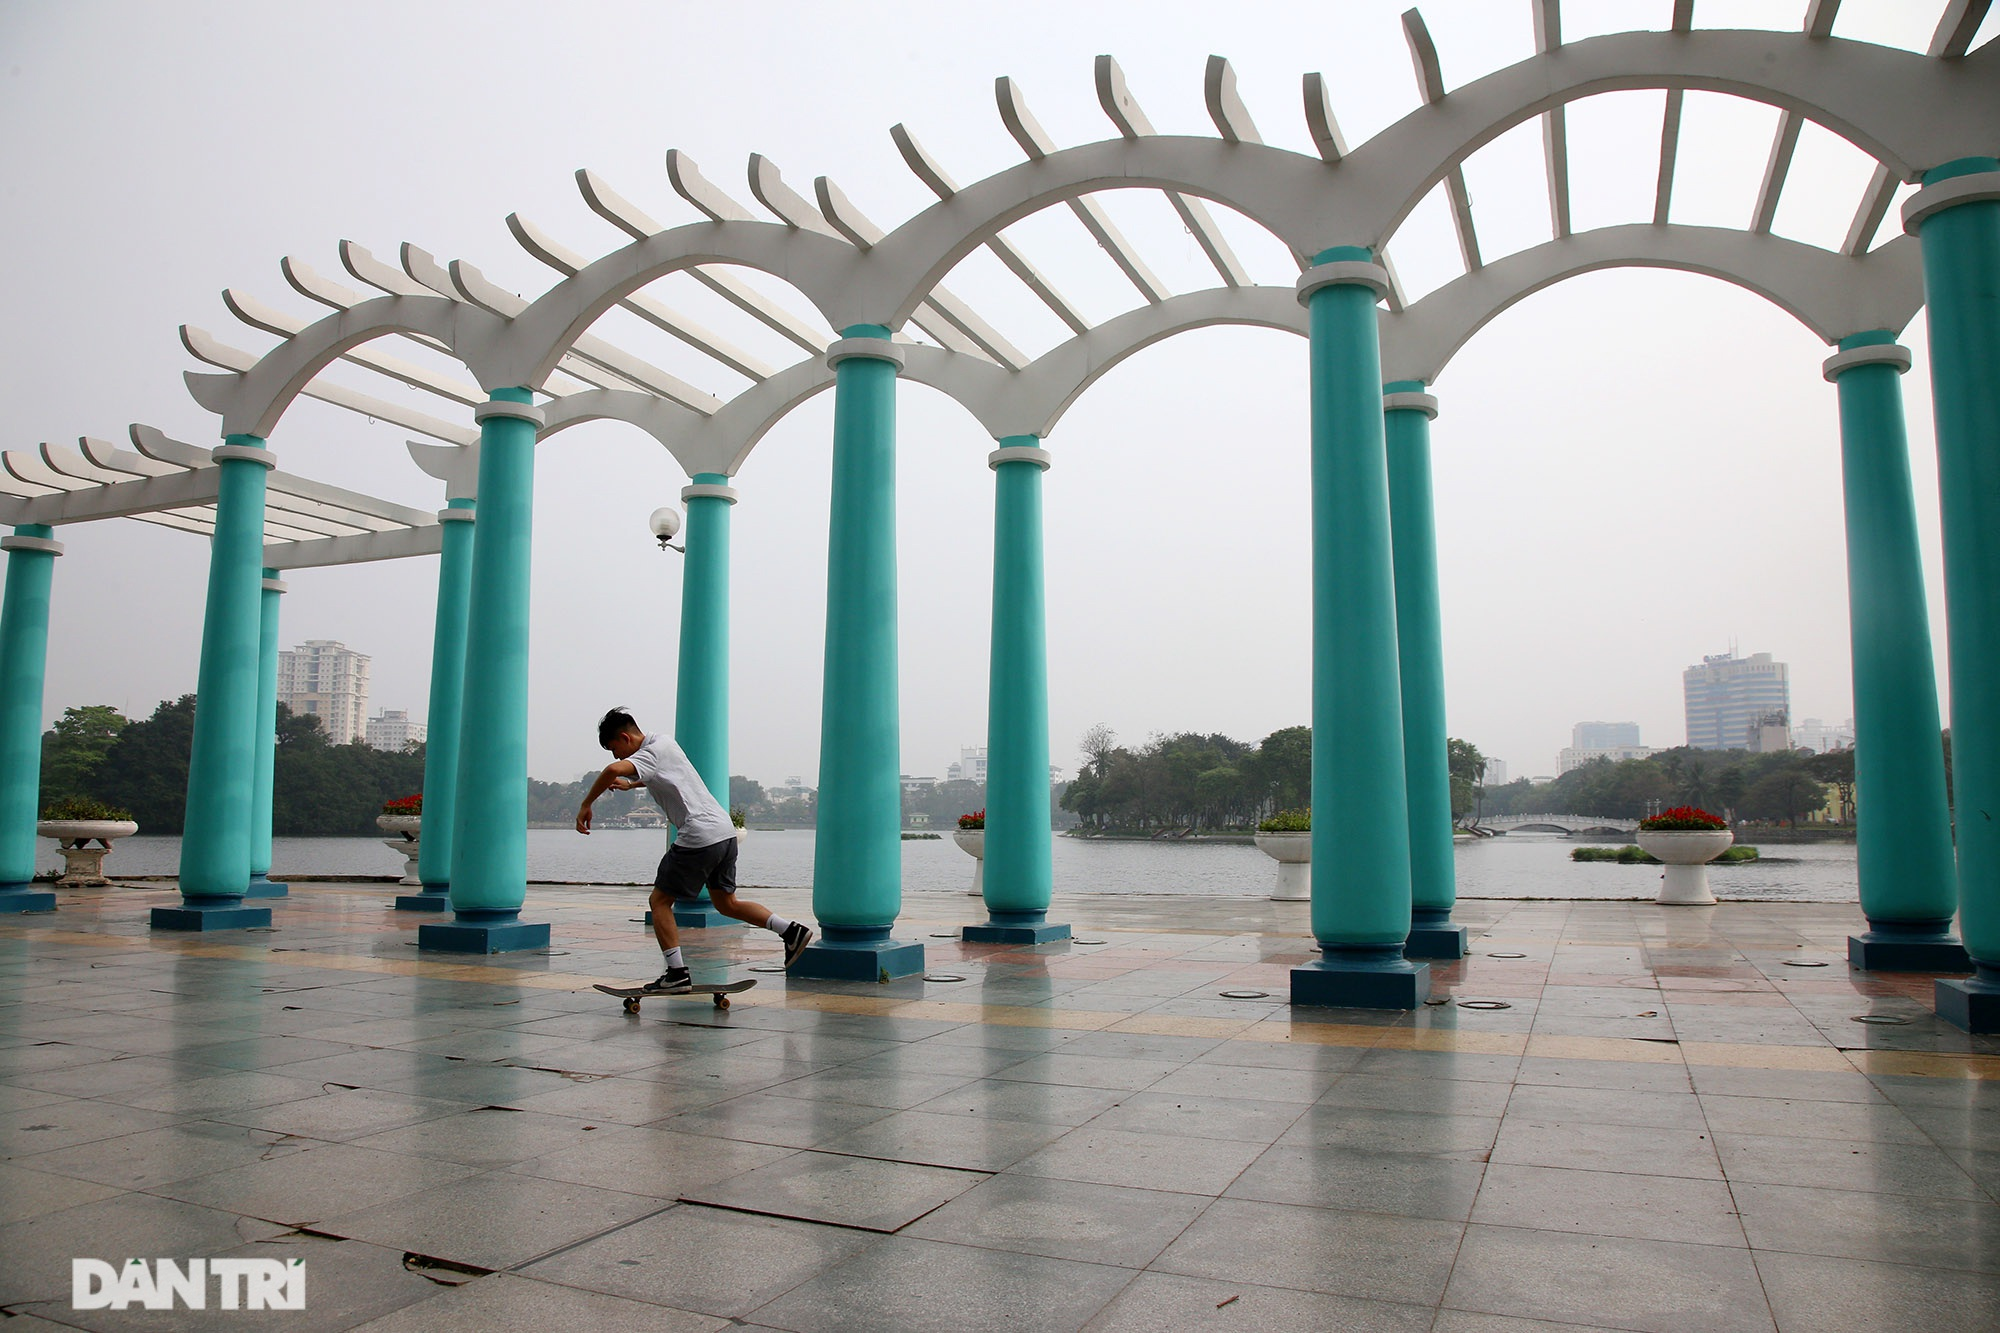 Little-known things about the largest park in Hanoi are about to turn 60 years old - 15 years old